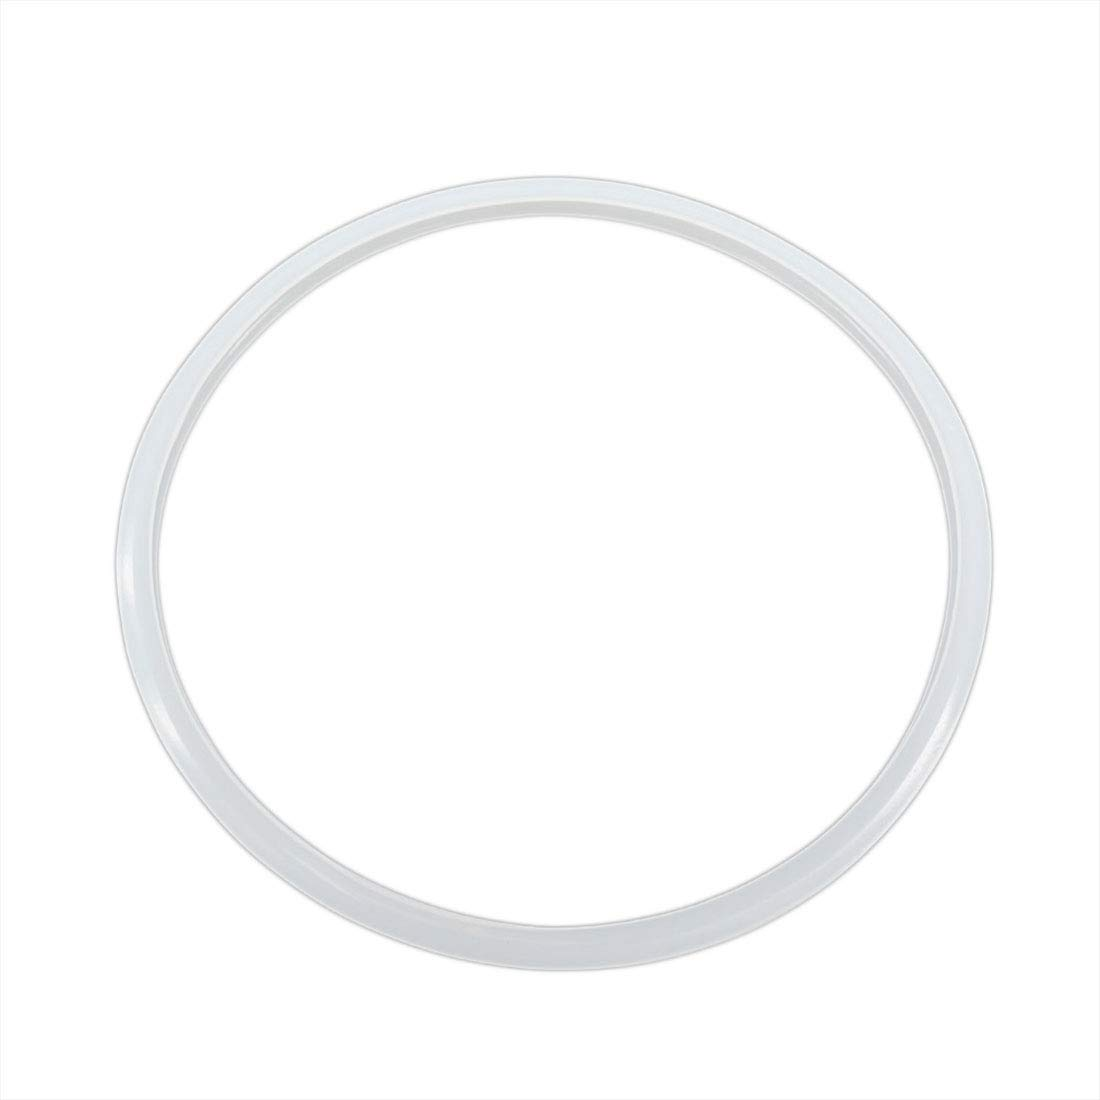 LDEXIN Silicone Sealing Ring Electric Pressure Cooker Pot Rubber Gasket Replacement,26cm/10.24inch